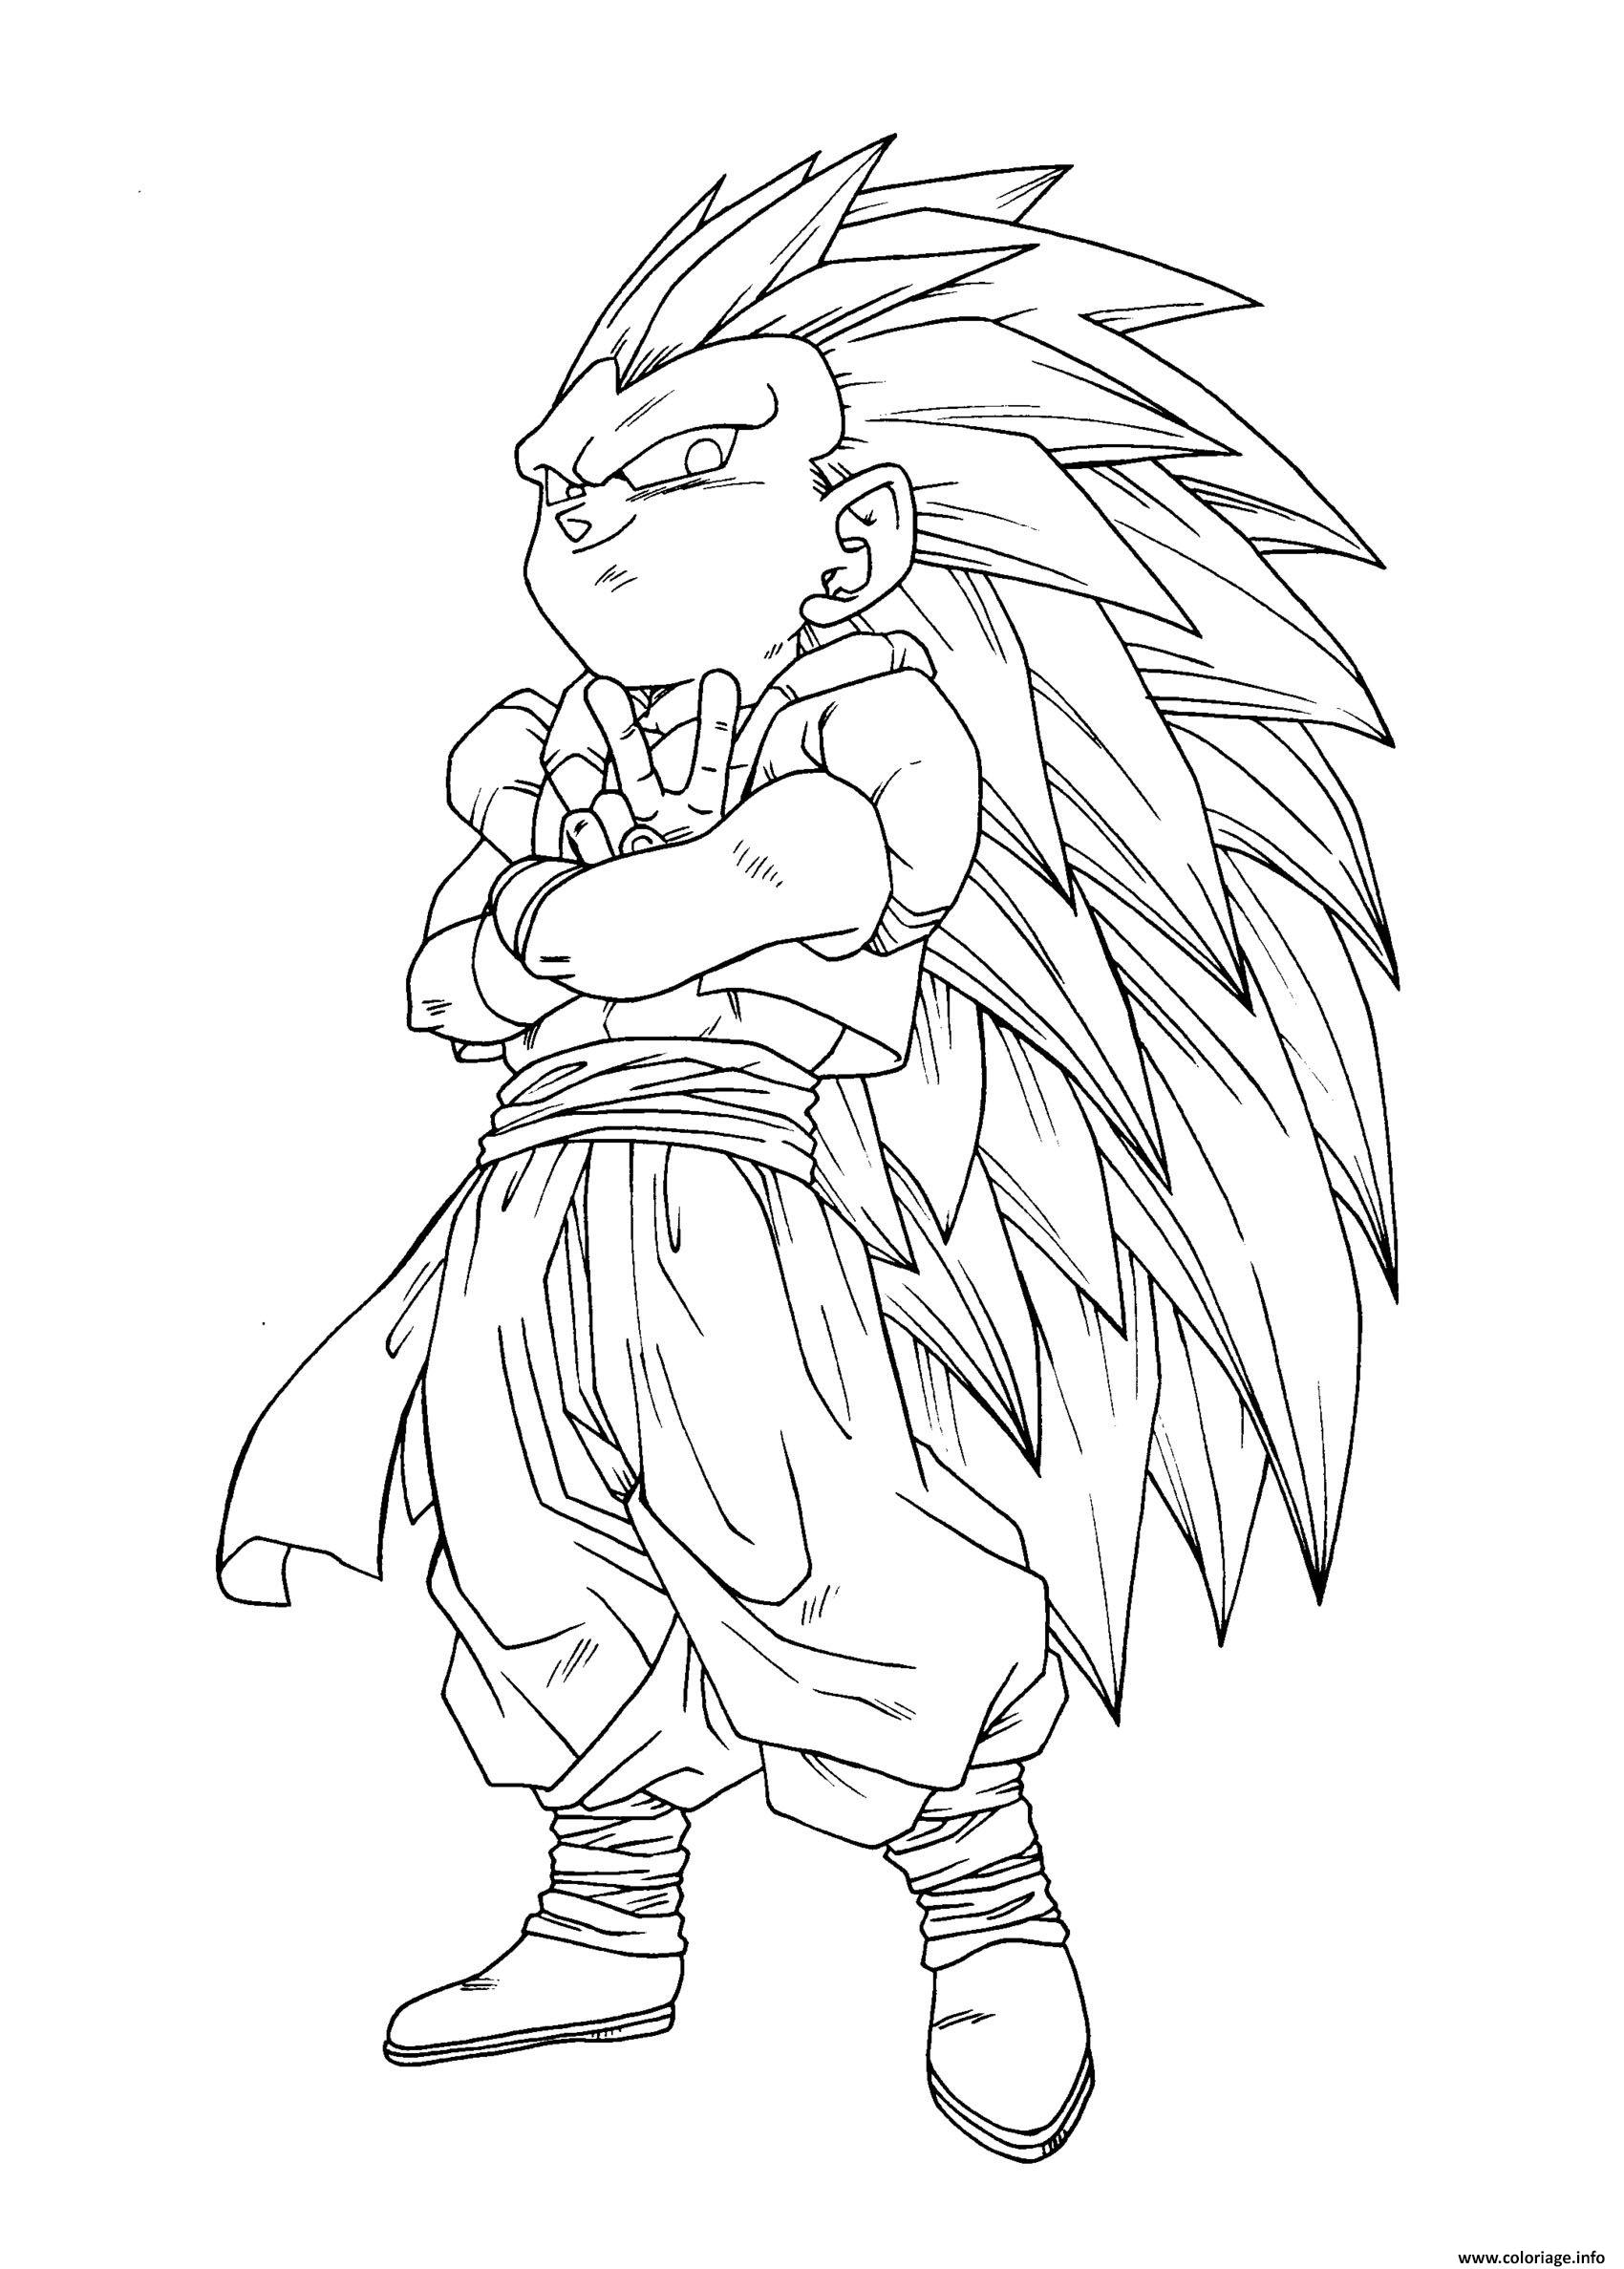 Coloriage super saiyan goten dragon ball z - Dessin de dragon ball super ...